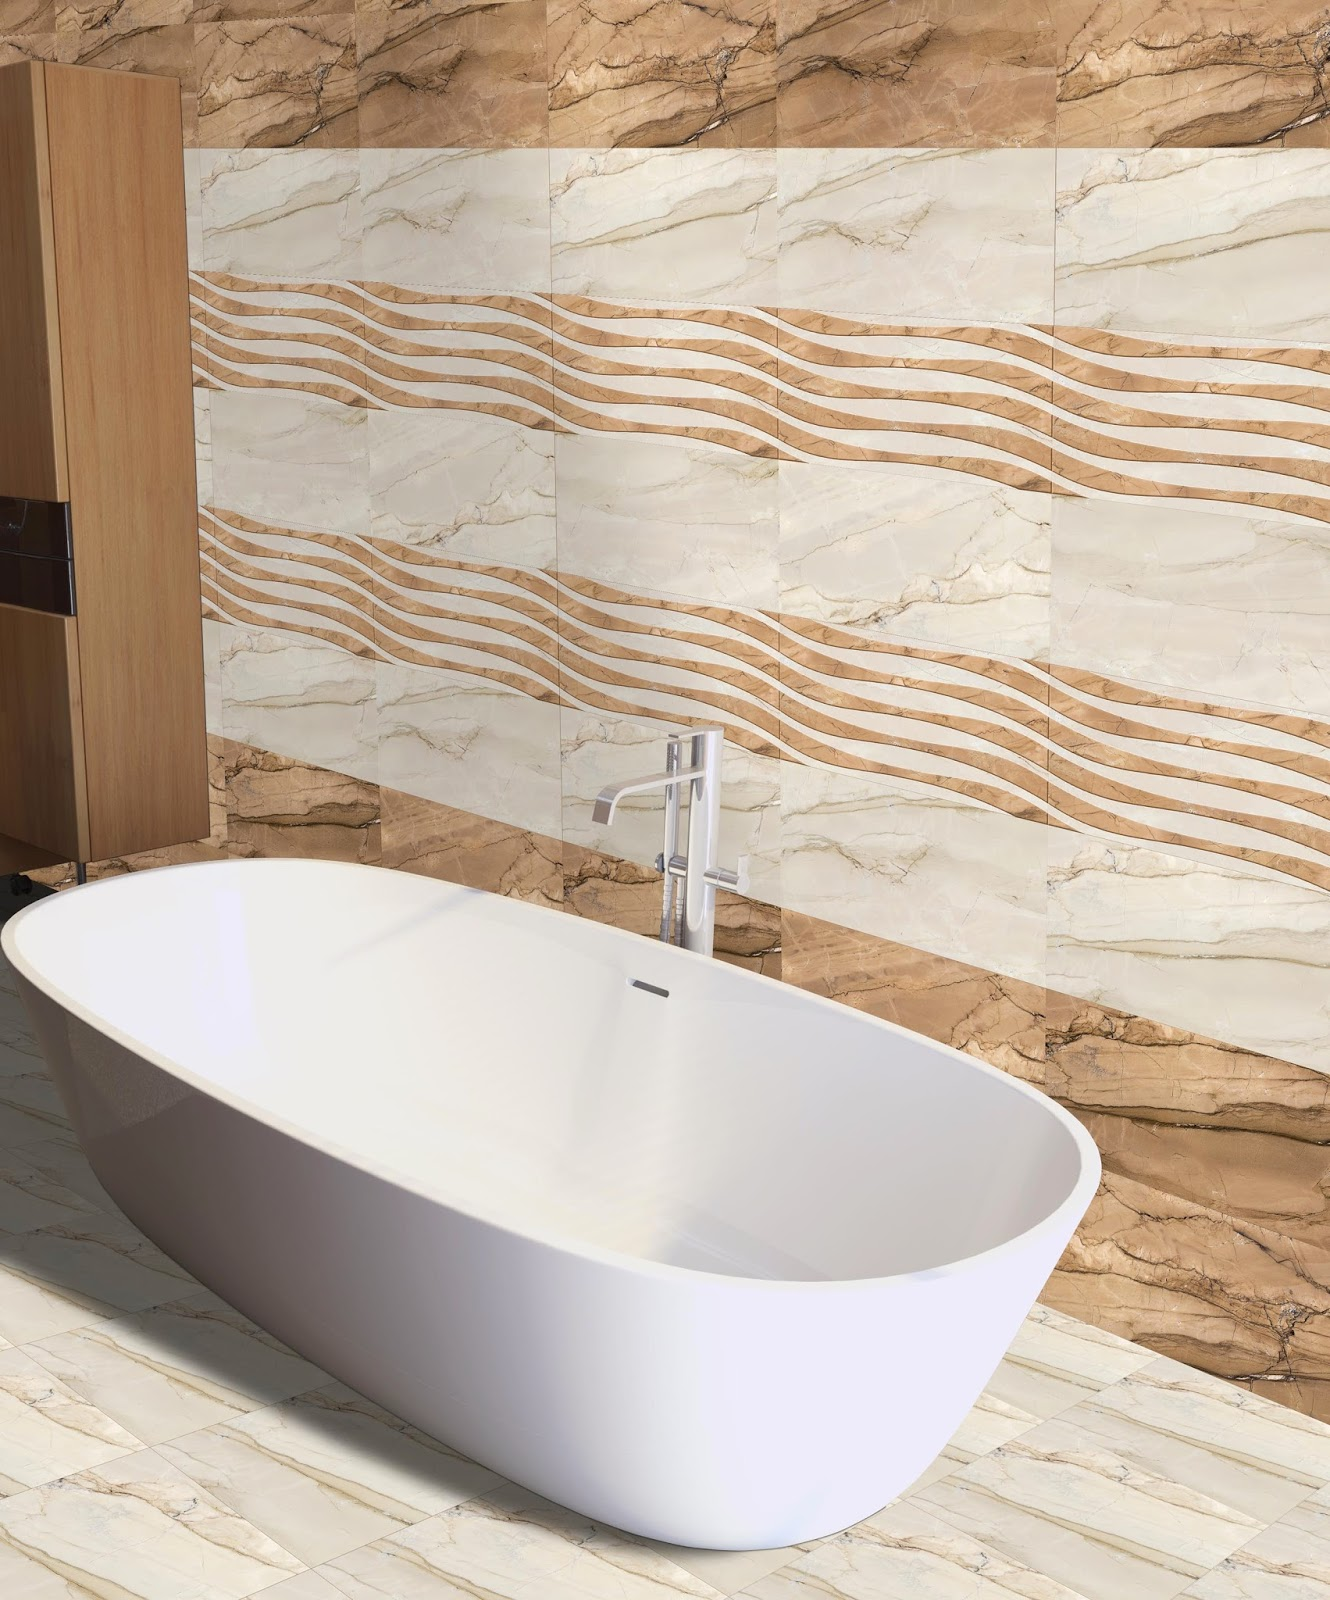 Book of bathroom tiles images in india in uk by mia Bathroom design companies in india